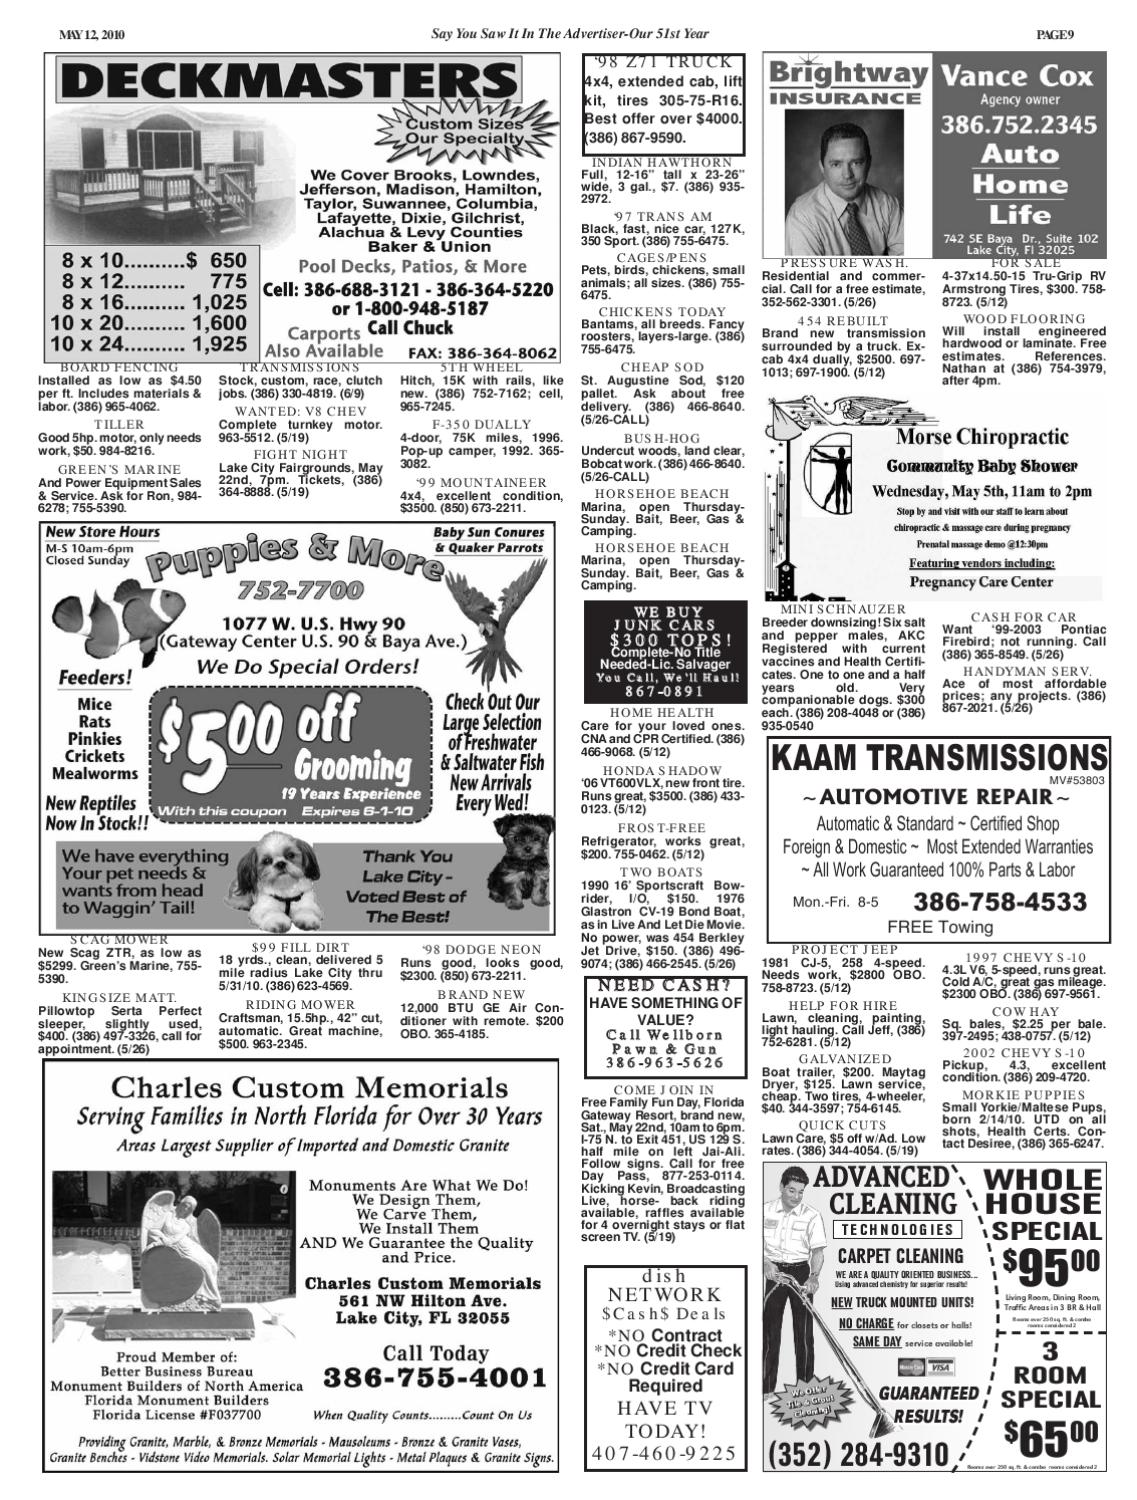 Newspaper Lake City Advertiser Volume 51 Issue 19 by SCBUSA